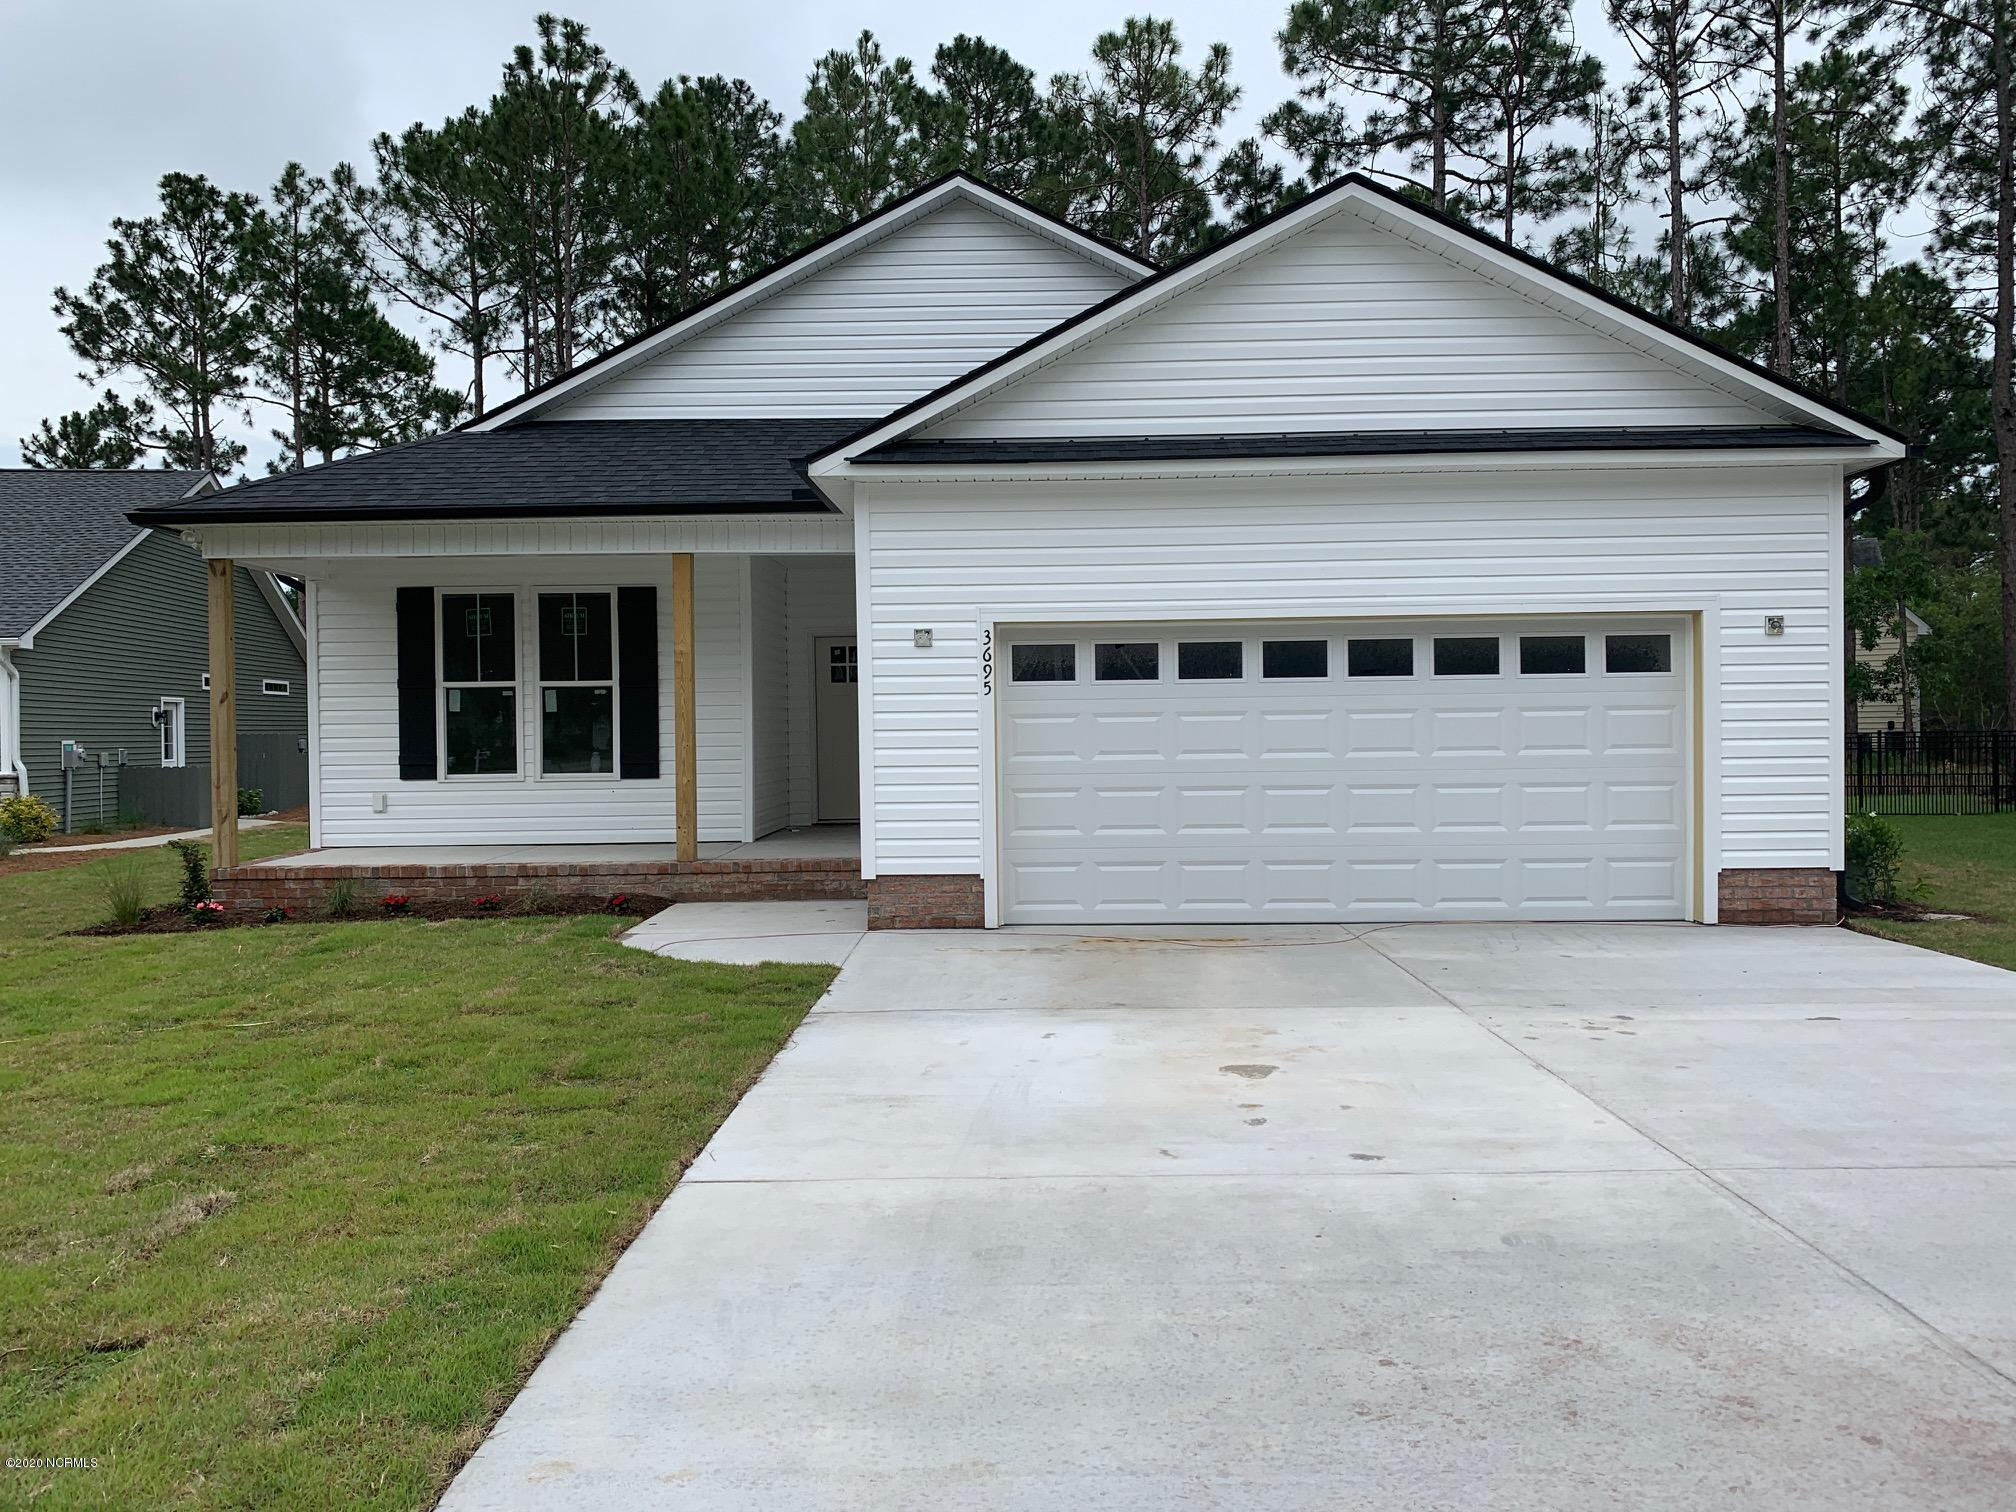 3695 Willow Lake Drive, Southport, North Carolina 28461, 3 Bedrooms Bedrooms, ,2 BathroomsBathrooms,Residential,For Sale,Willow Lake,100188067